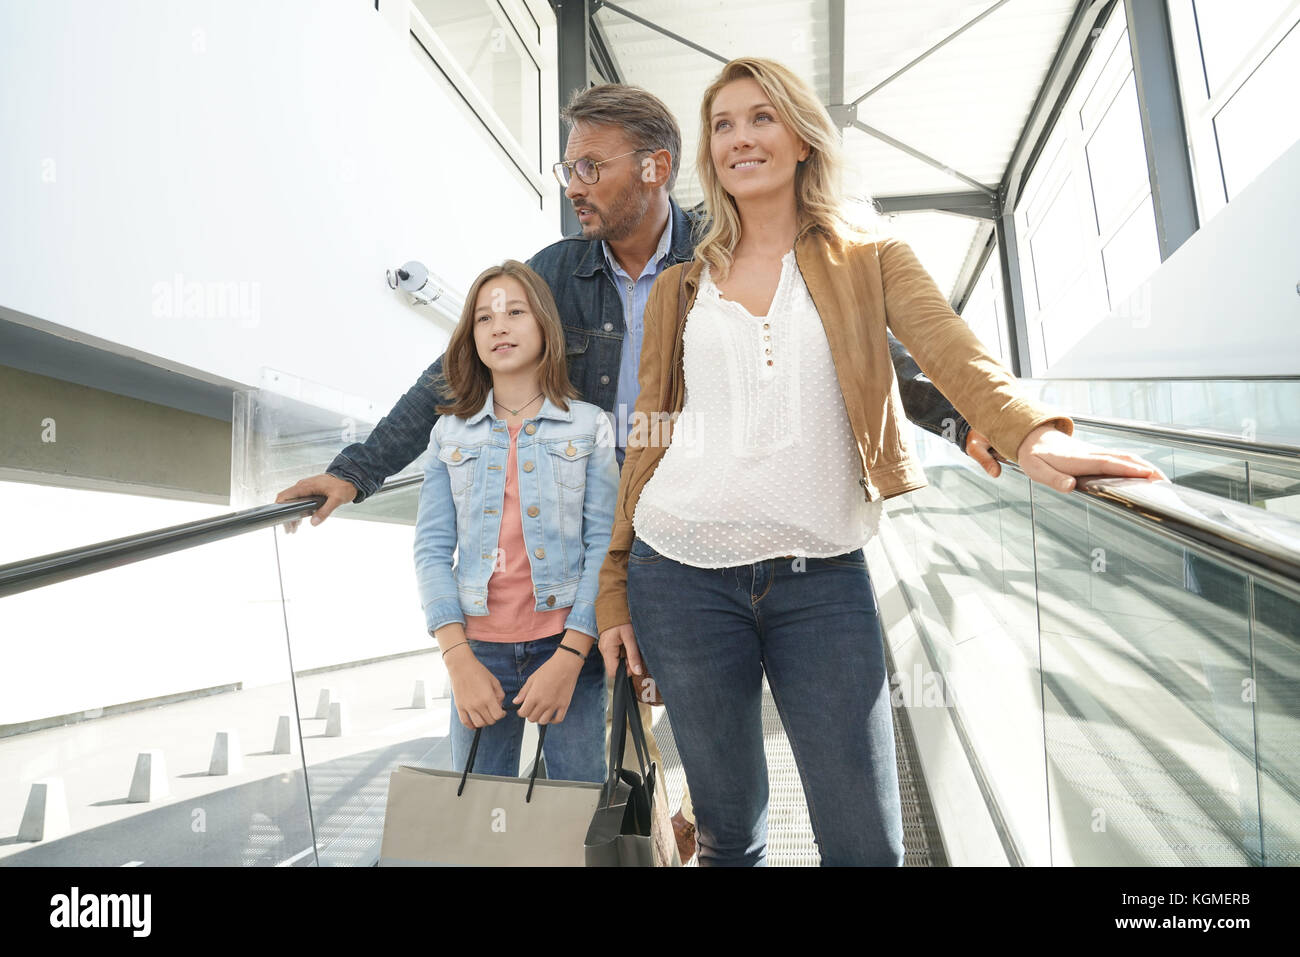 Family going down escalator of shopping mall - Stock Image